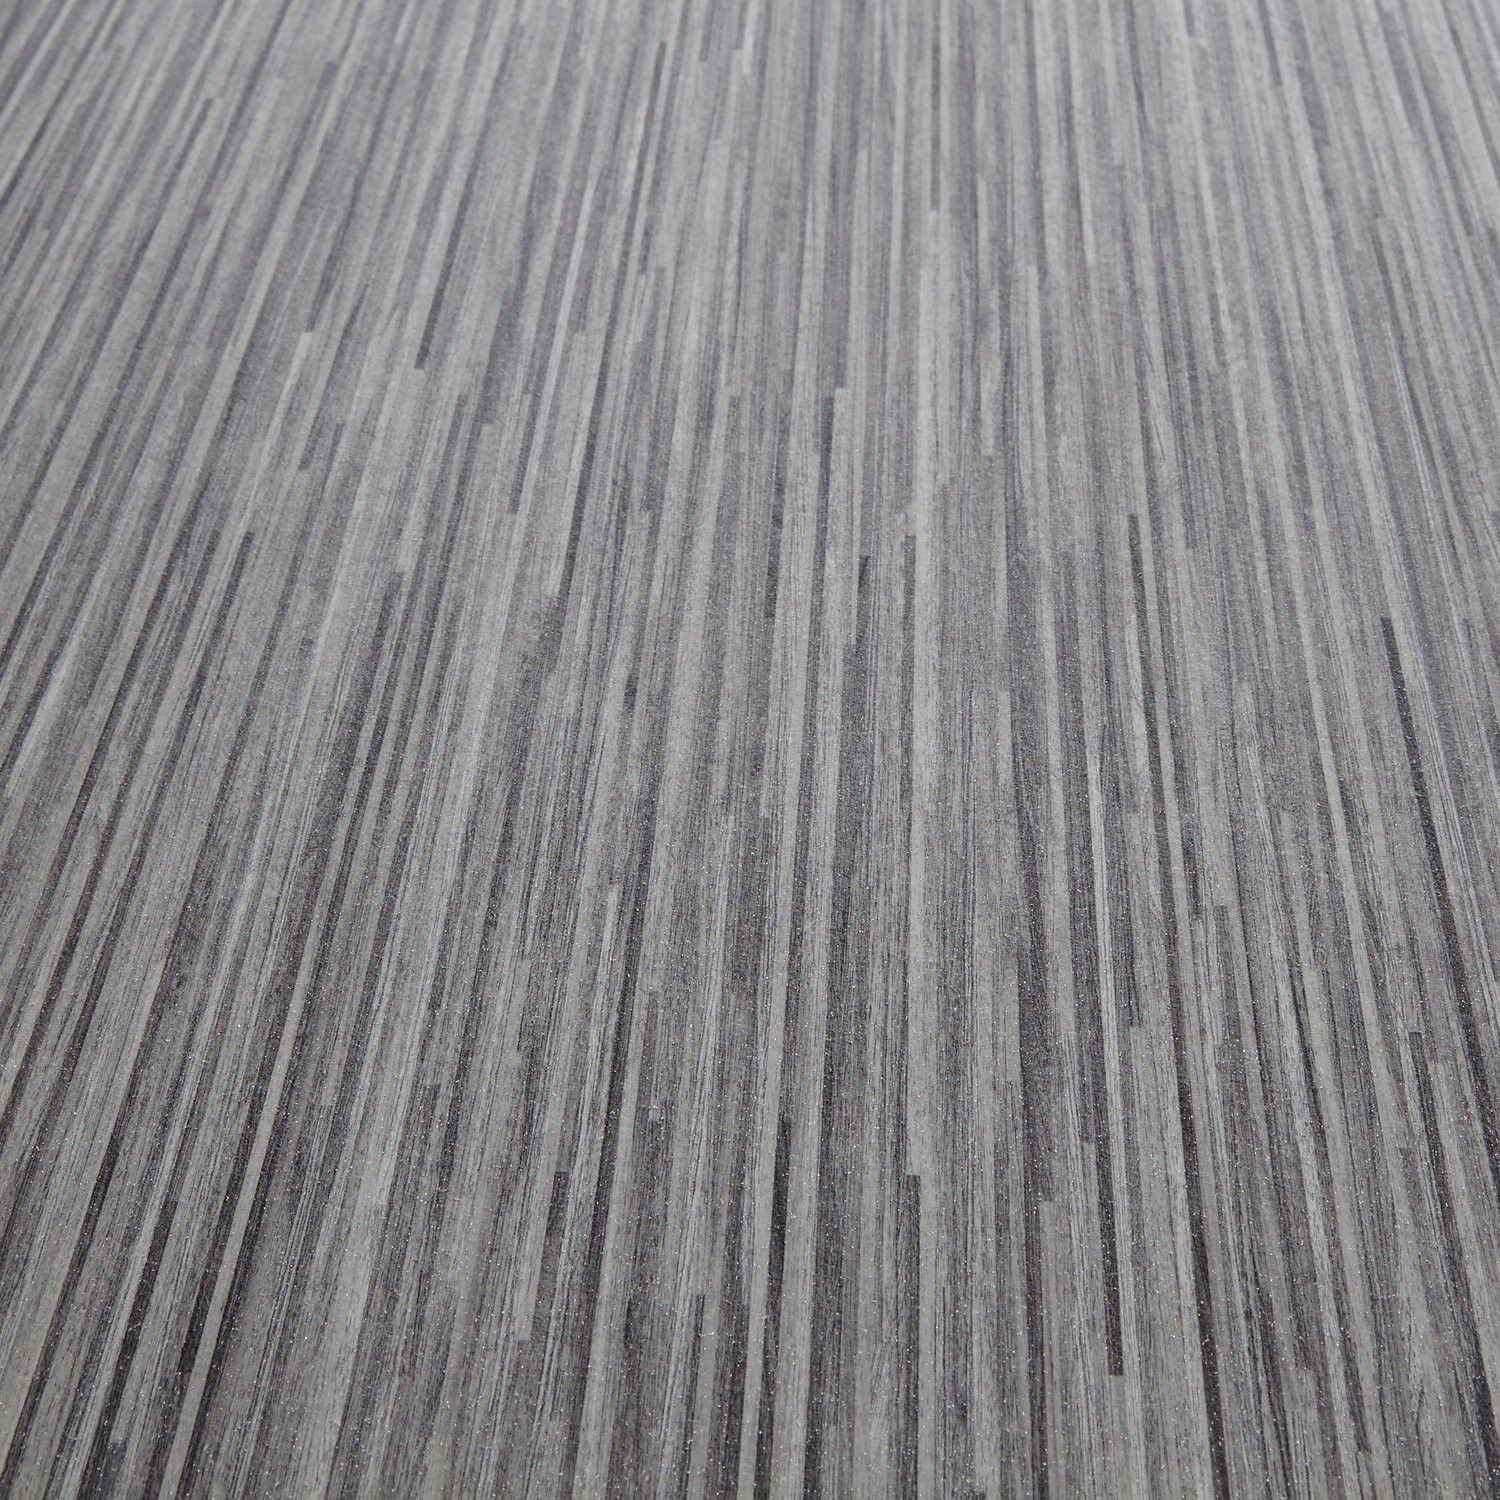 Planet II 693 La Paz Grey Vinyl Flooring | Kitchen flooring | Pinterest